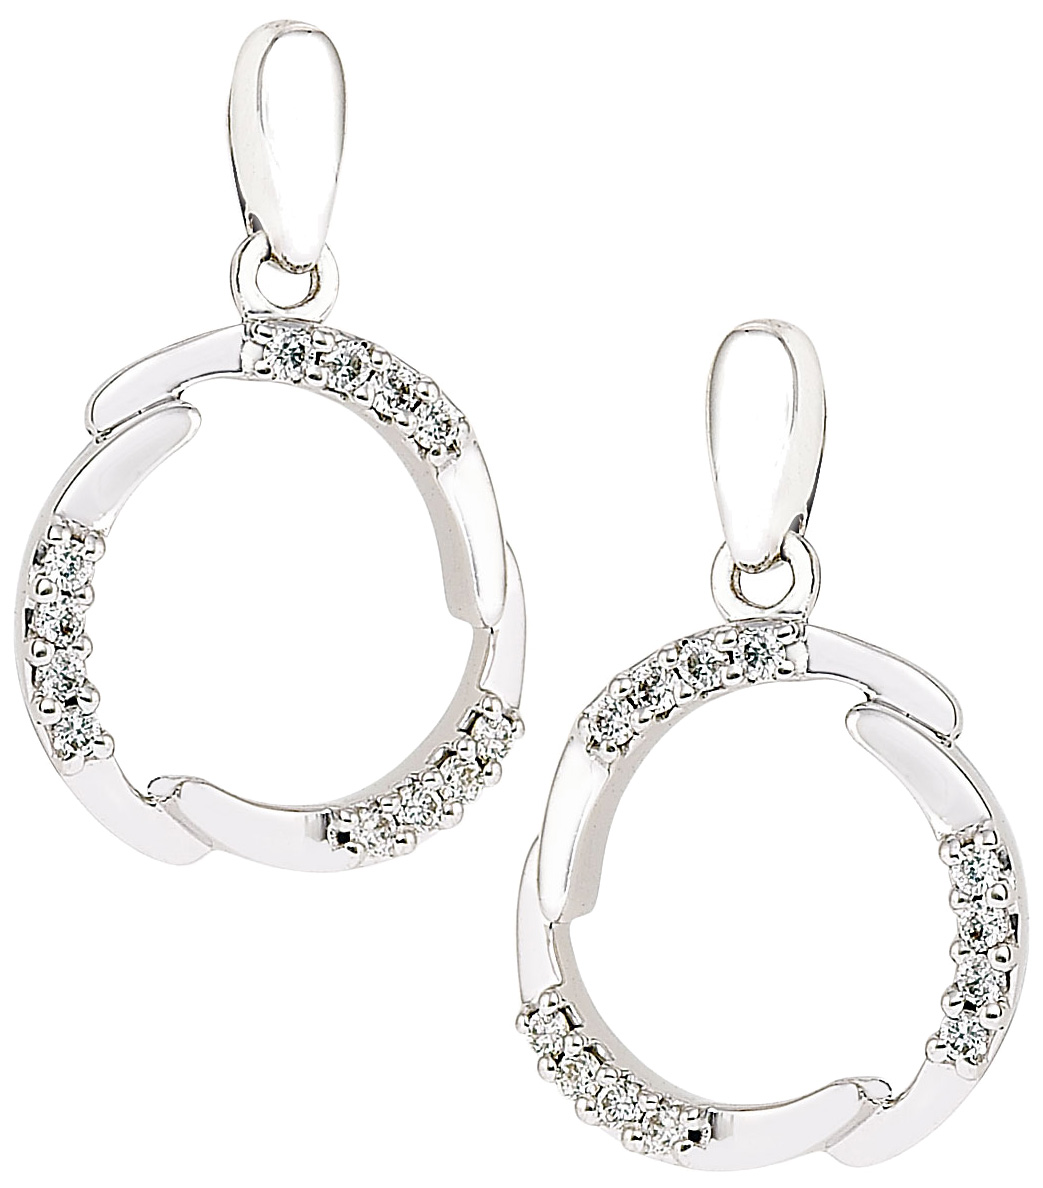 Diamond Earrings 12 Carat Diamonds On 14k White Gold